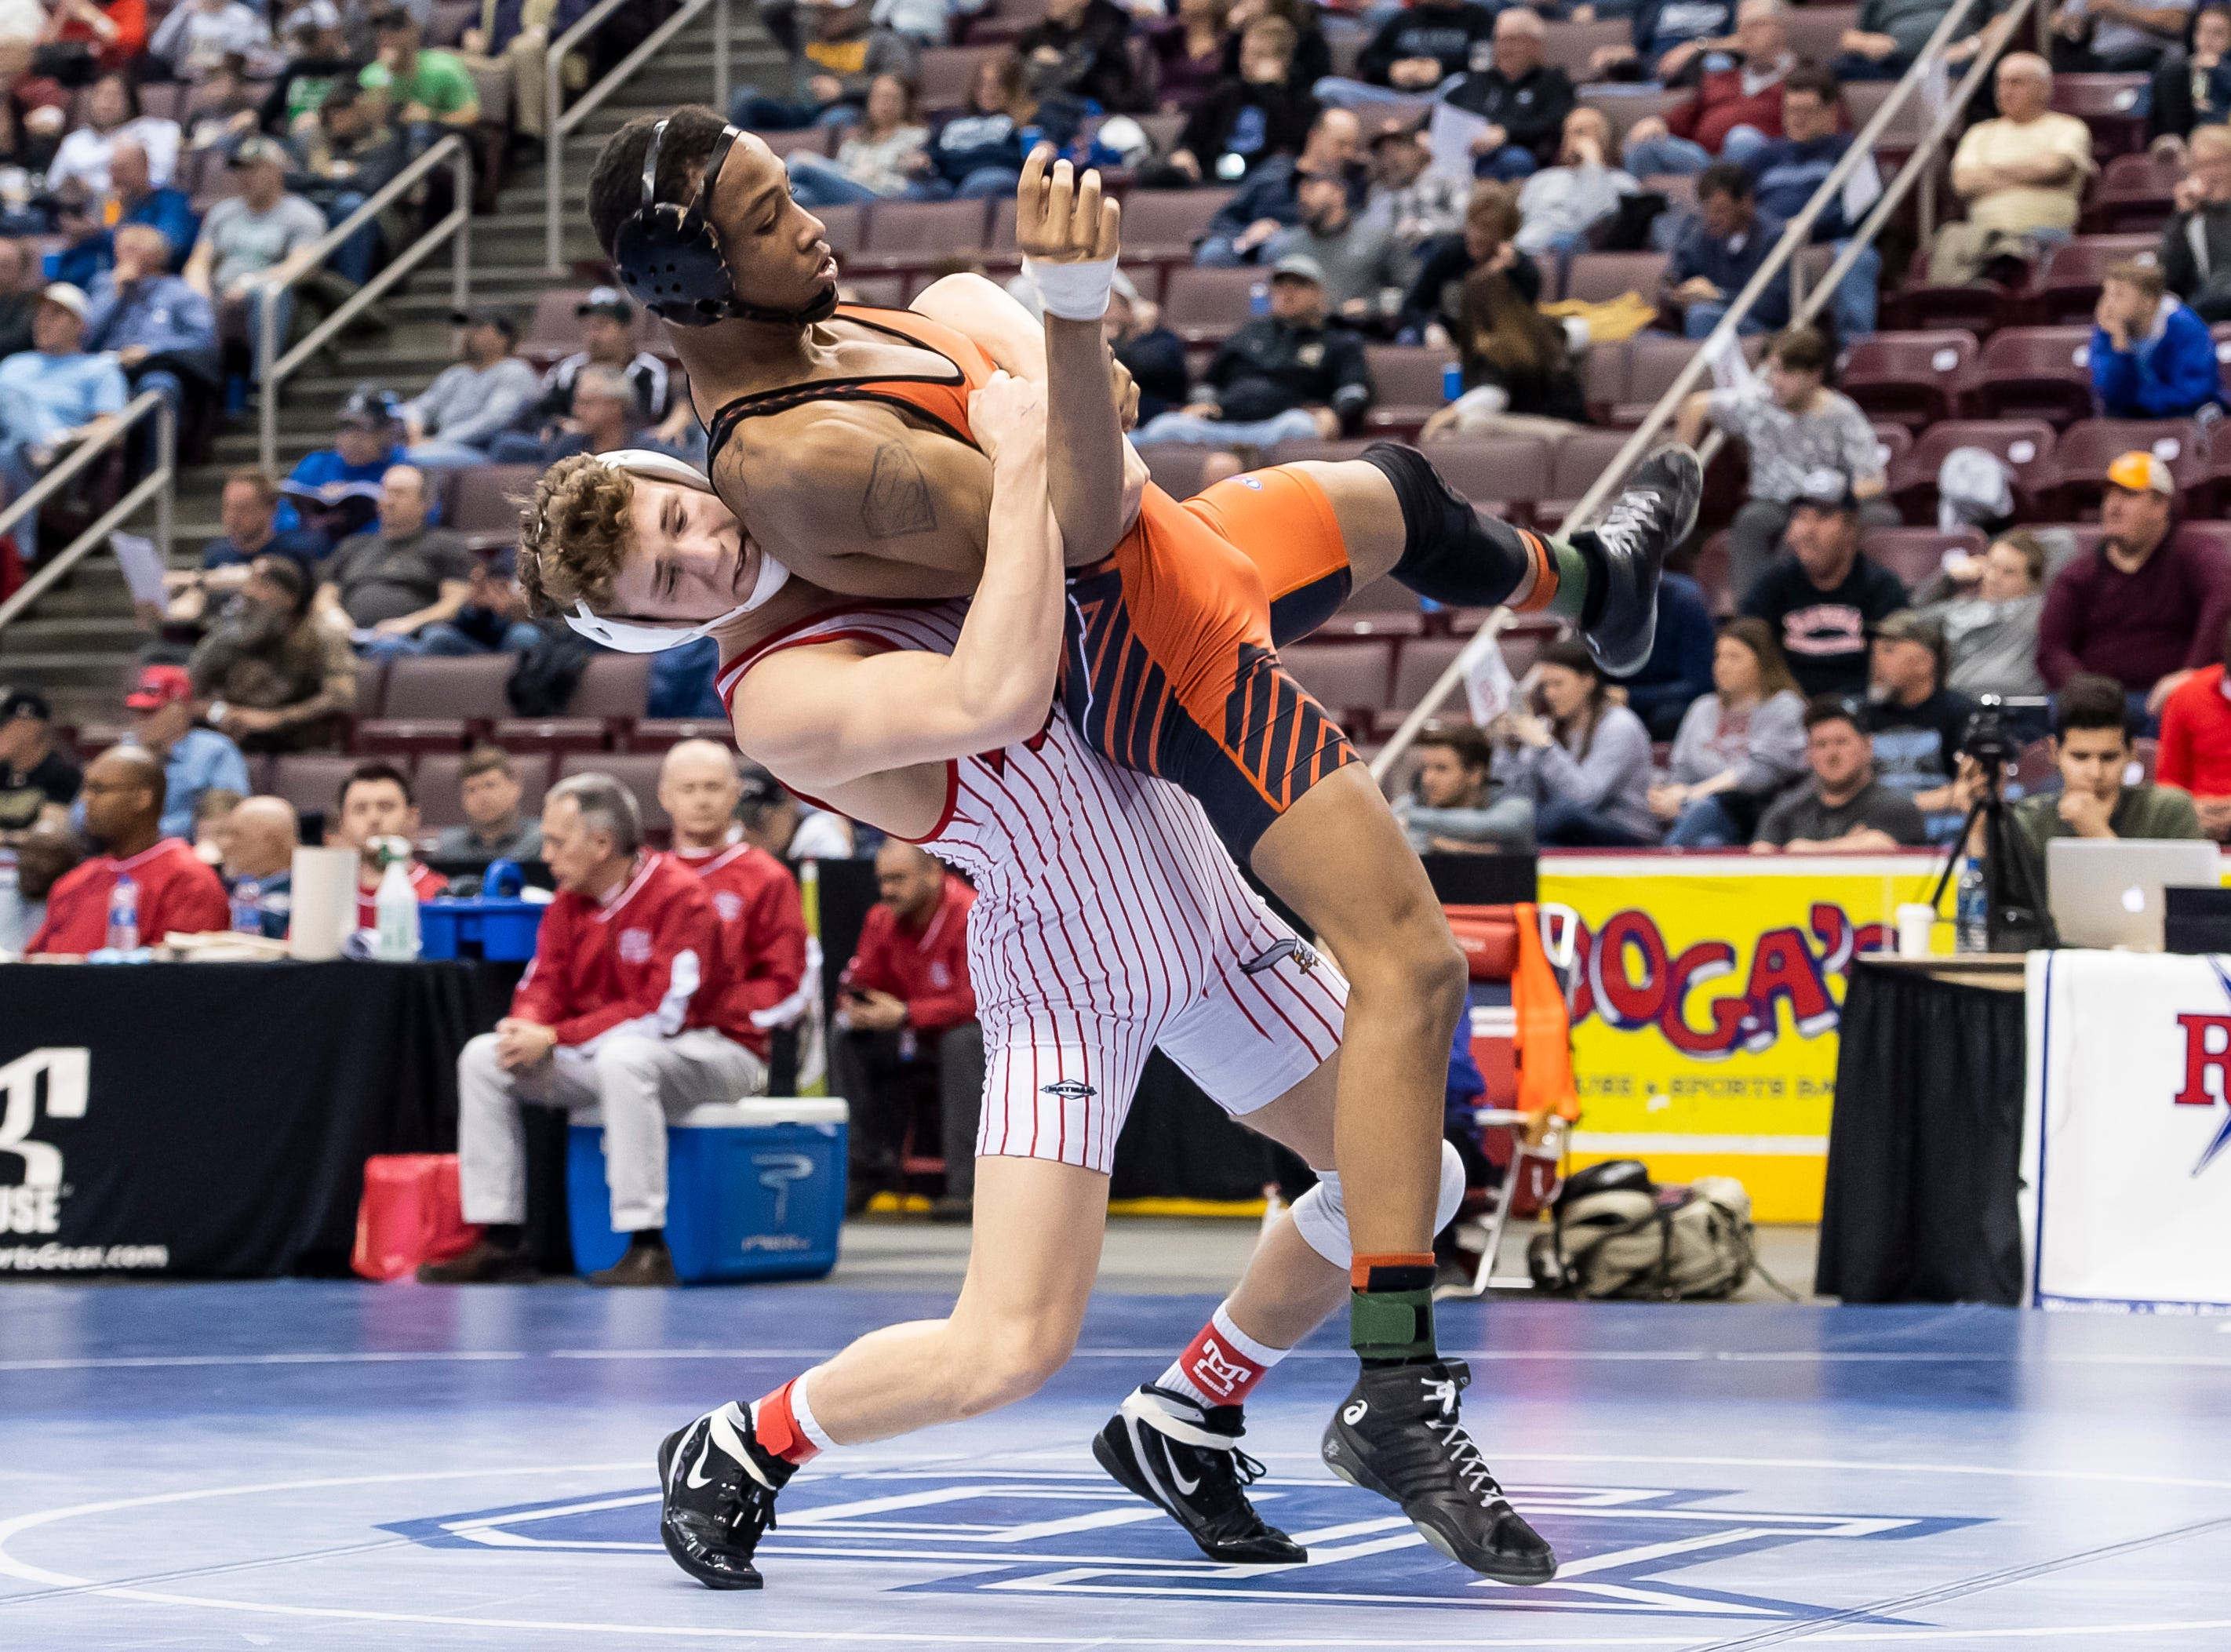 Bermudian Springs' Trenton Harder takes down Sharon's Sully Allen during the PIAA 2A 152-pound 5th-place bout at the Giant Center in Hershey Saturday, March 9, 2019. Allen won by fall 4:36.